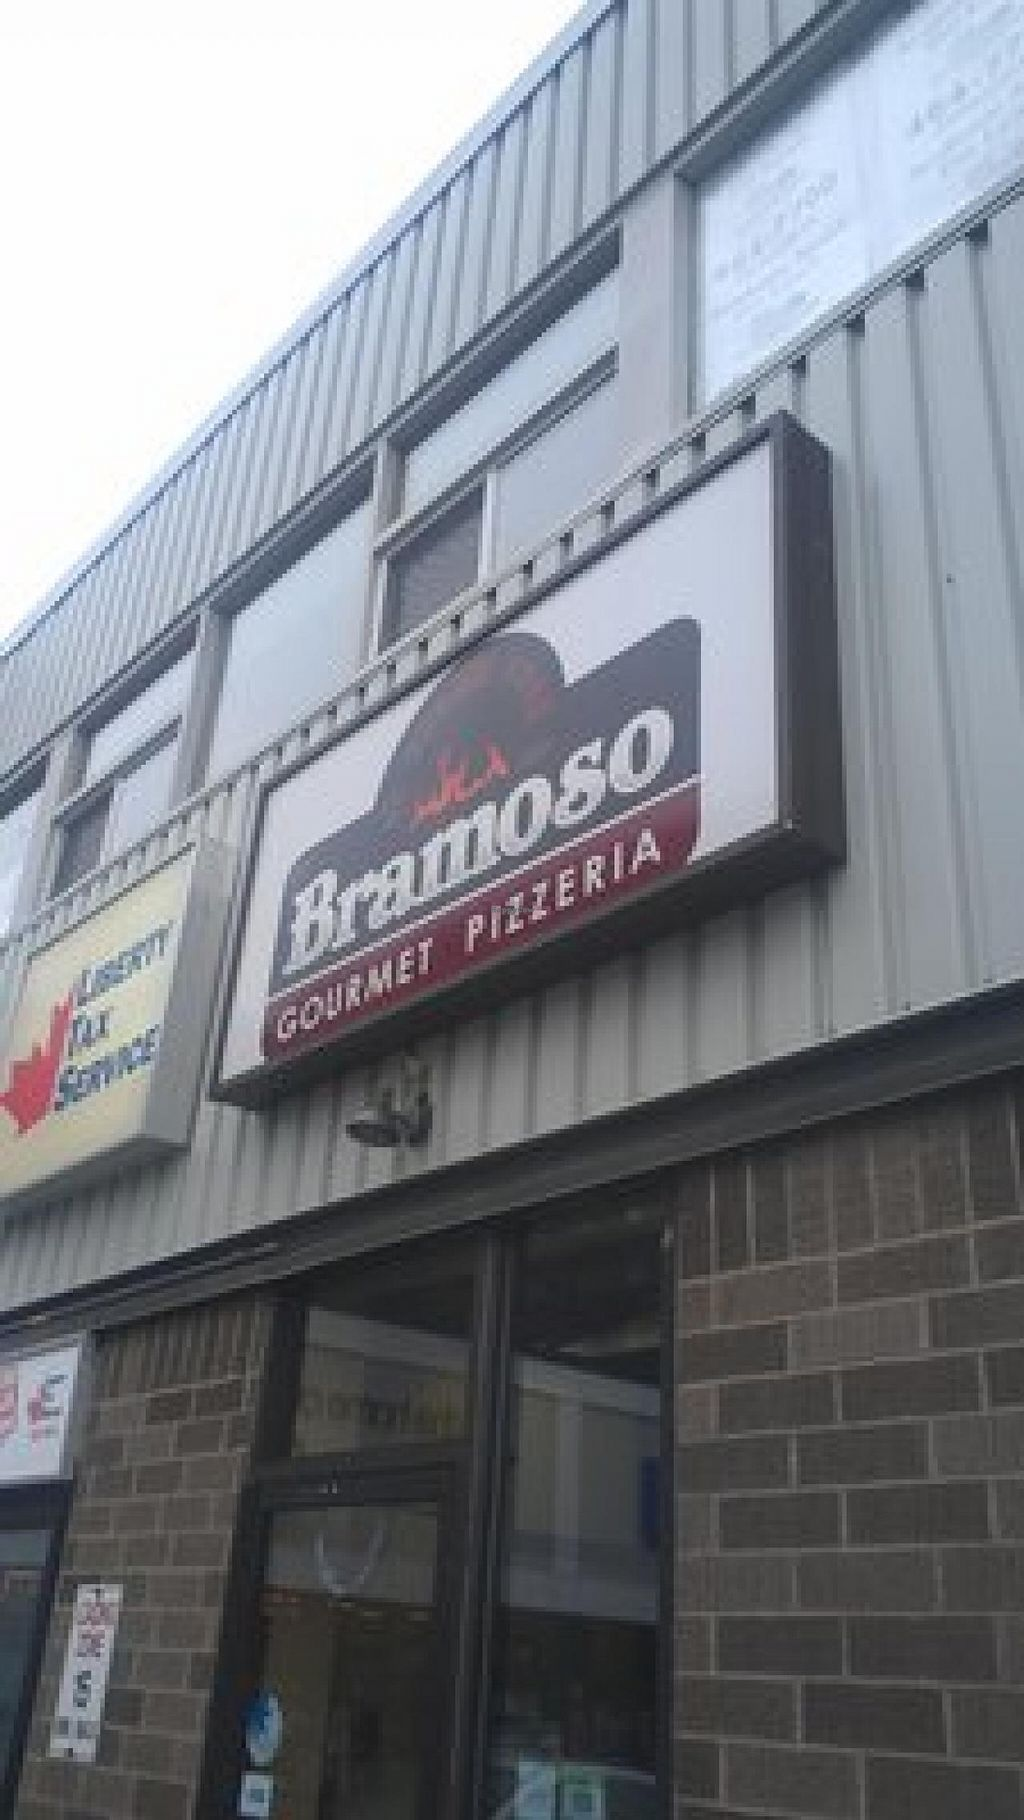 """Photo of Bramoso Pizzeria  by <a href=""""/members/profile/QuothTheRaven"""">QuothTheRaven</a> <br/>Back entrance  <br/> June 14, 2014  - <a href='/contact/abuse/image/38921/72025'>Report</a>"""